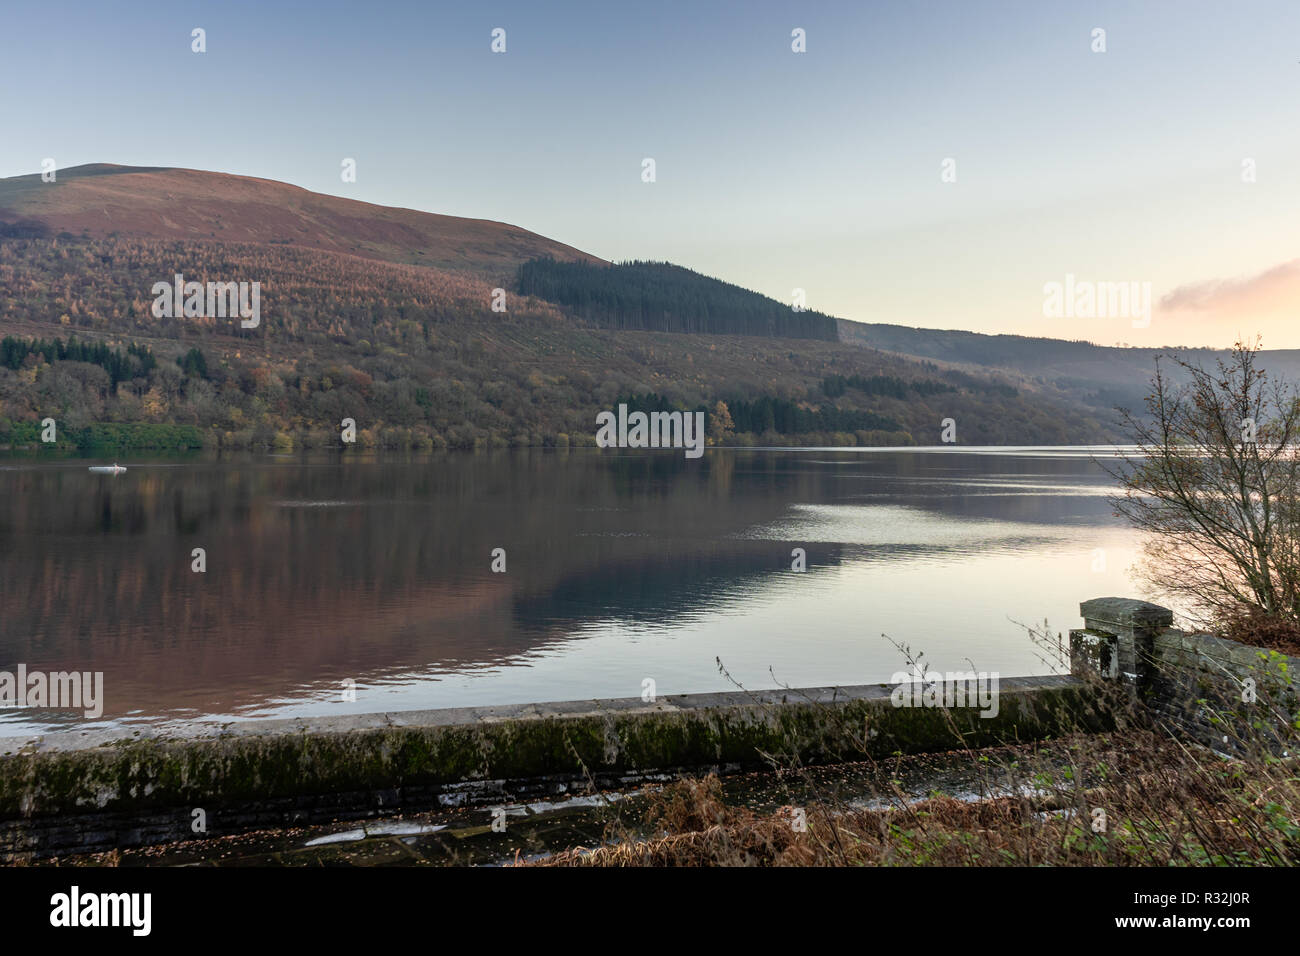 Scenic view across the Talybont Reservoir in the Brecon Beacons during autumn, Powys, Wales, UK - Stock Image